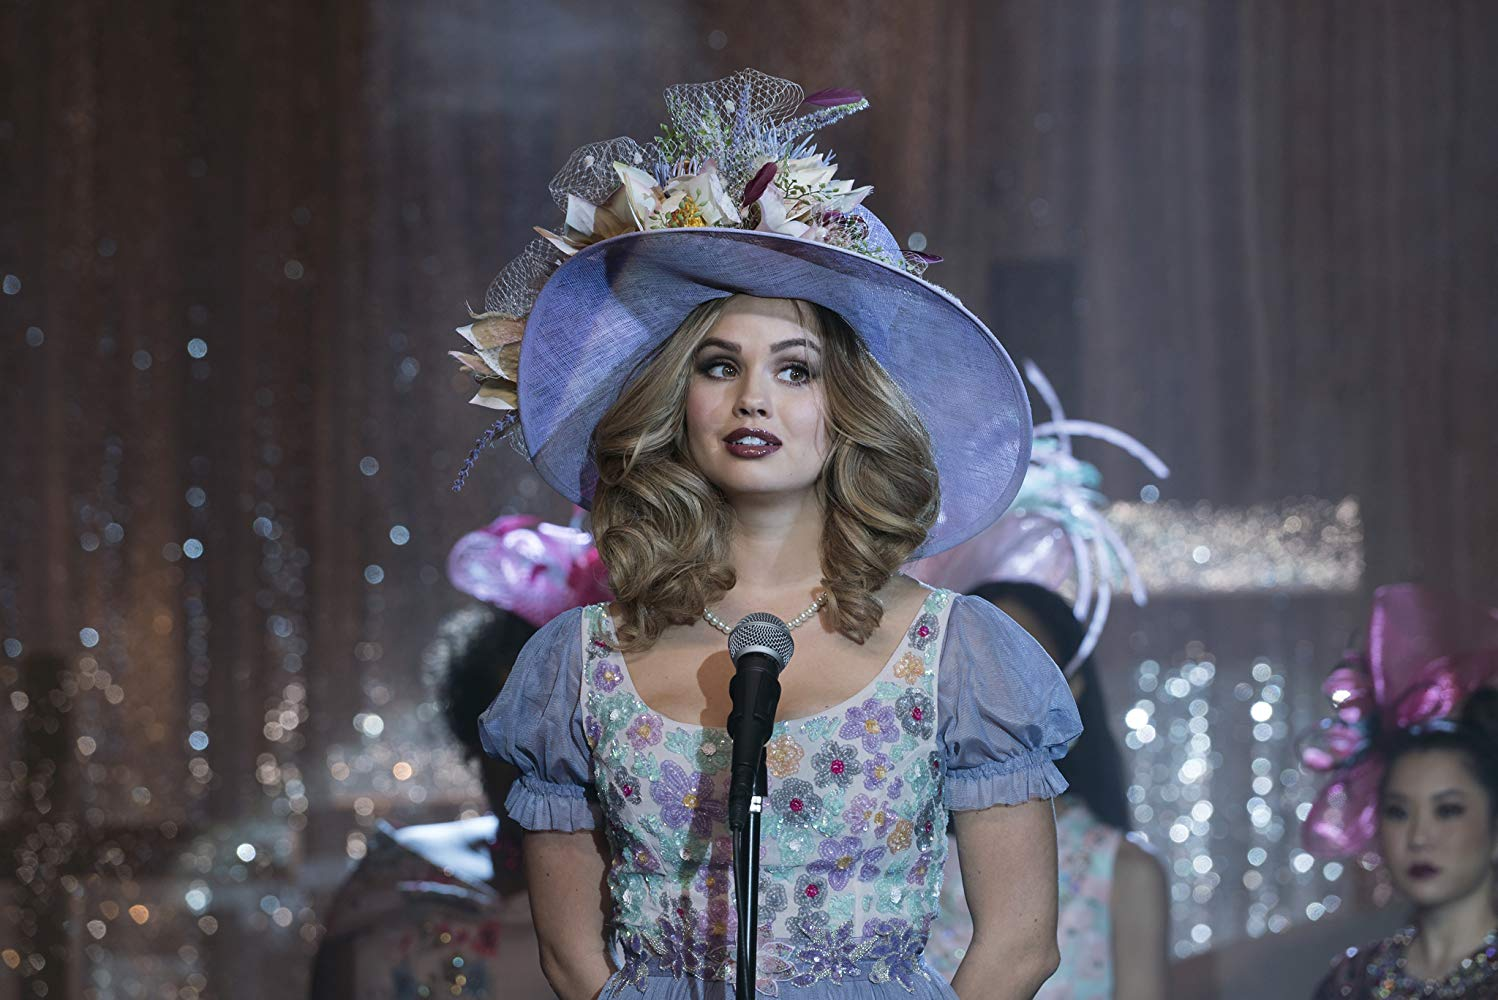 Netflix's Insatiable trailer caused a huge backlash. Critics say the show's even worse.